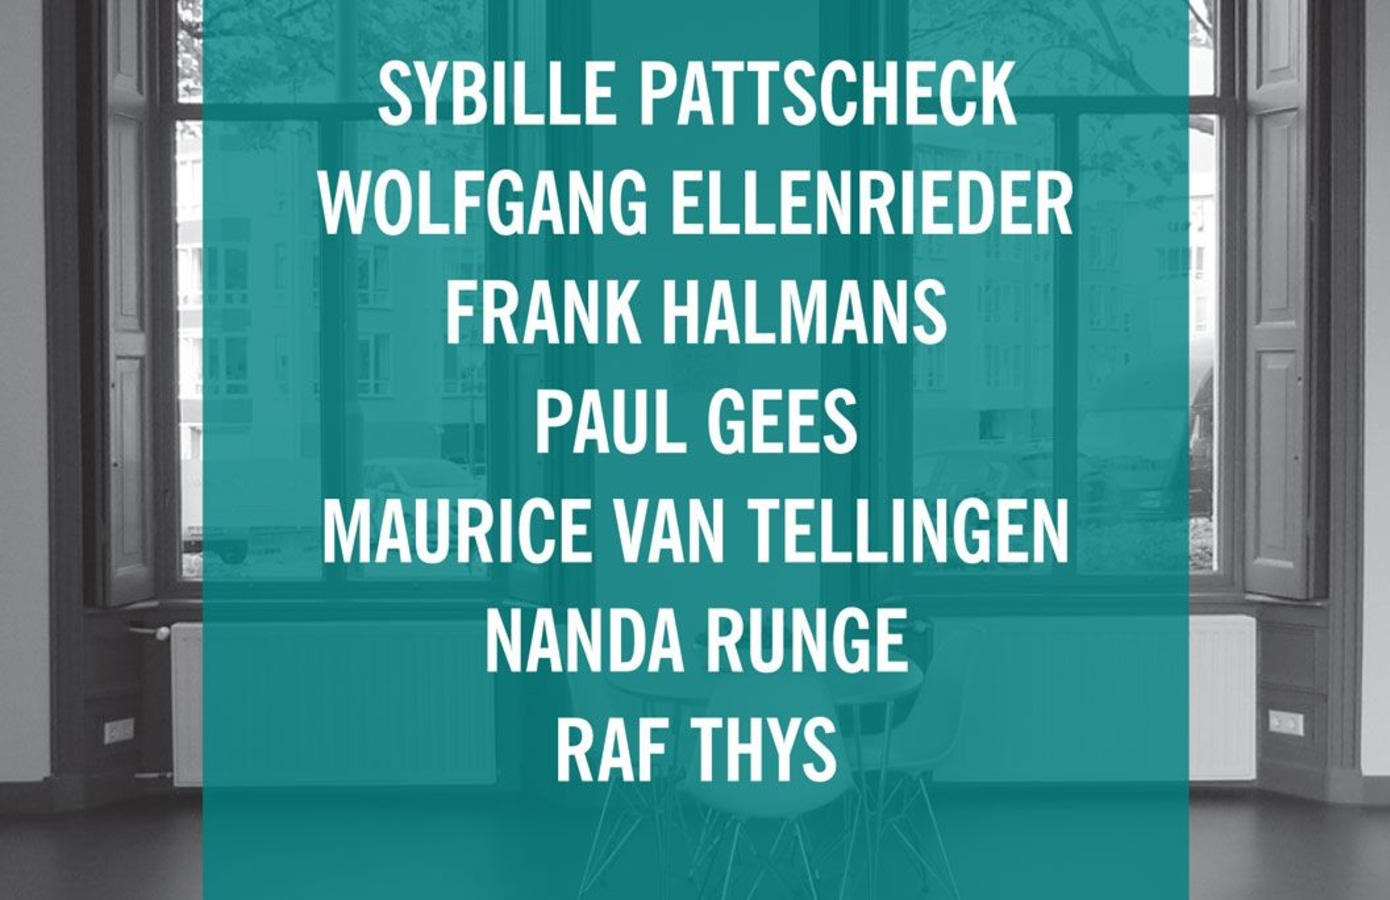 REASONS TO BE CHEERFUL (PART 1), Wolfgang Ellenrieder, Paul Gees, Frank Halmans, Sybille Pattscheck, Nanda Runge, Maurice van Tellingen, Raf Thys,